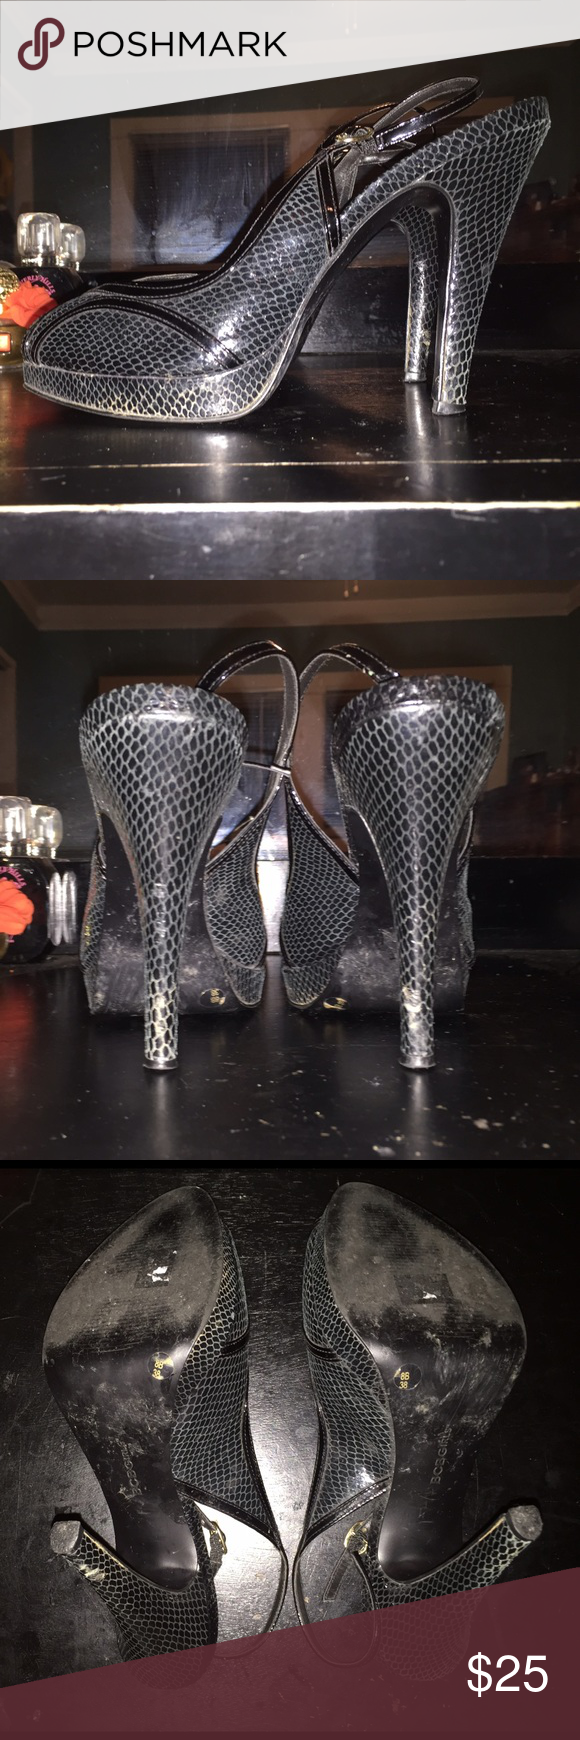 BCBG Black Snakeskin Slingback Peeptoe Heels 8 • BCBG Girls Black Snakeskin Heels in size 6.5. • Pre-owned heels are in excellent condition. Heels do show signs of wear on the bottom of soles (as pictured), heel tips, and heels do have minimal scuffs (as pictured). Inner shoe is cleans and heels do not have any smells! • Heels feature a black snakeskin print, Slingback strap, and a peep toe front with Art Deco inspired trim. (as pictured) • A true size 8 BCBGirls Shoes Heels